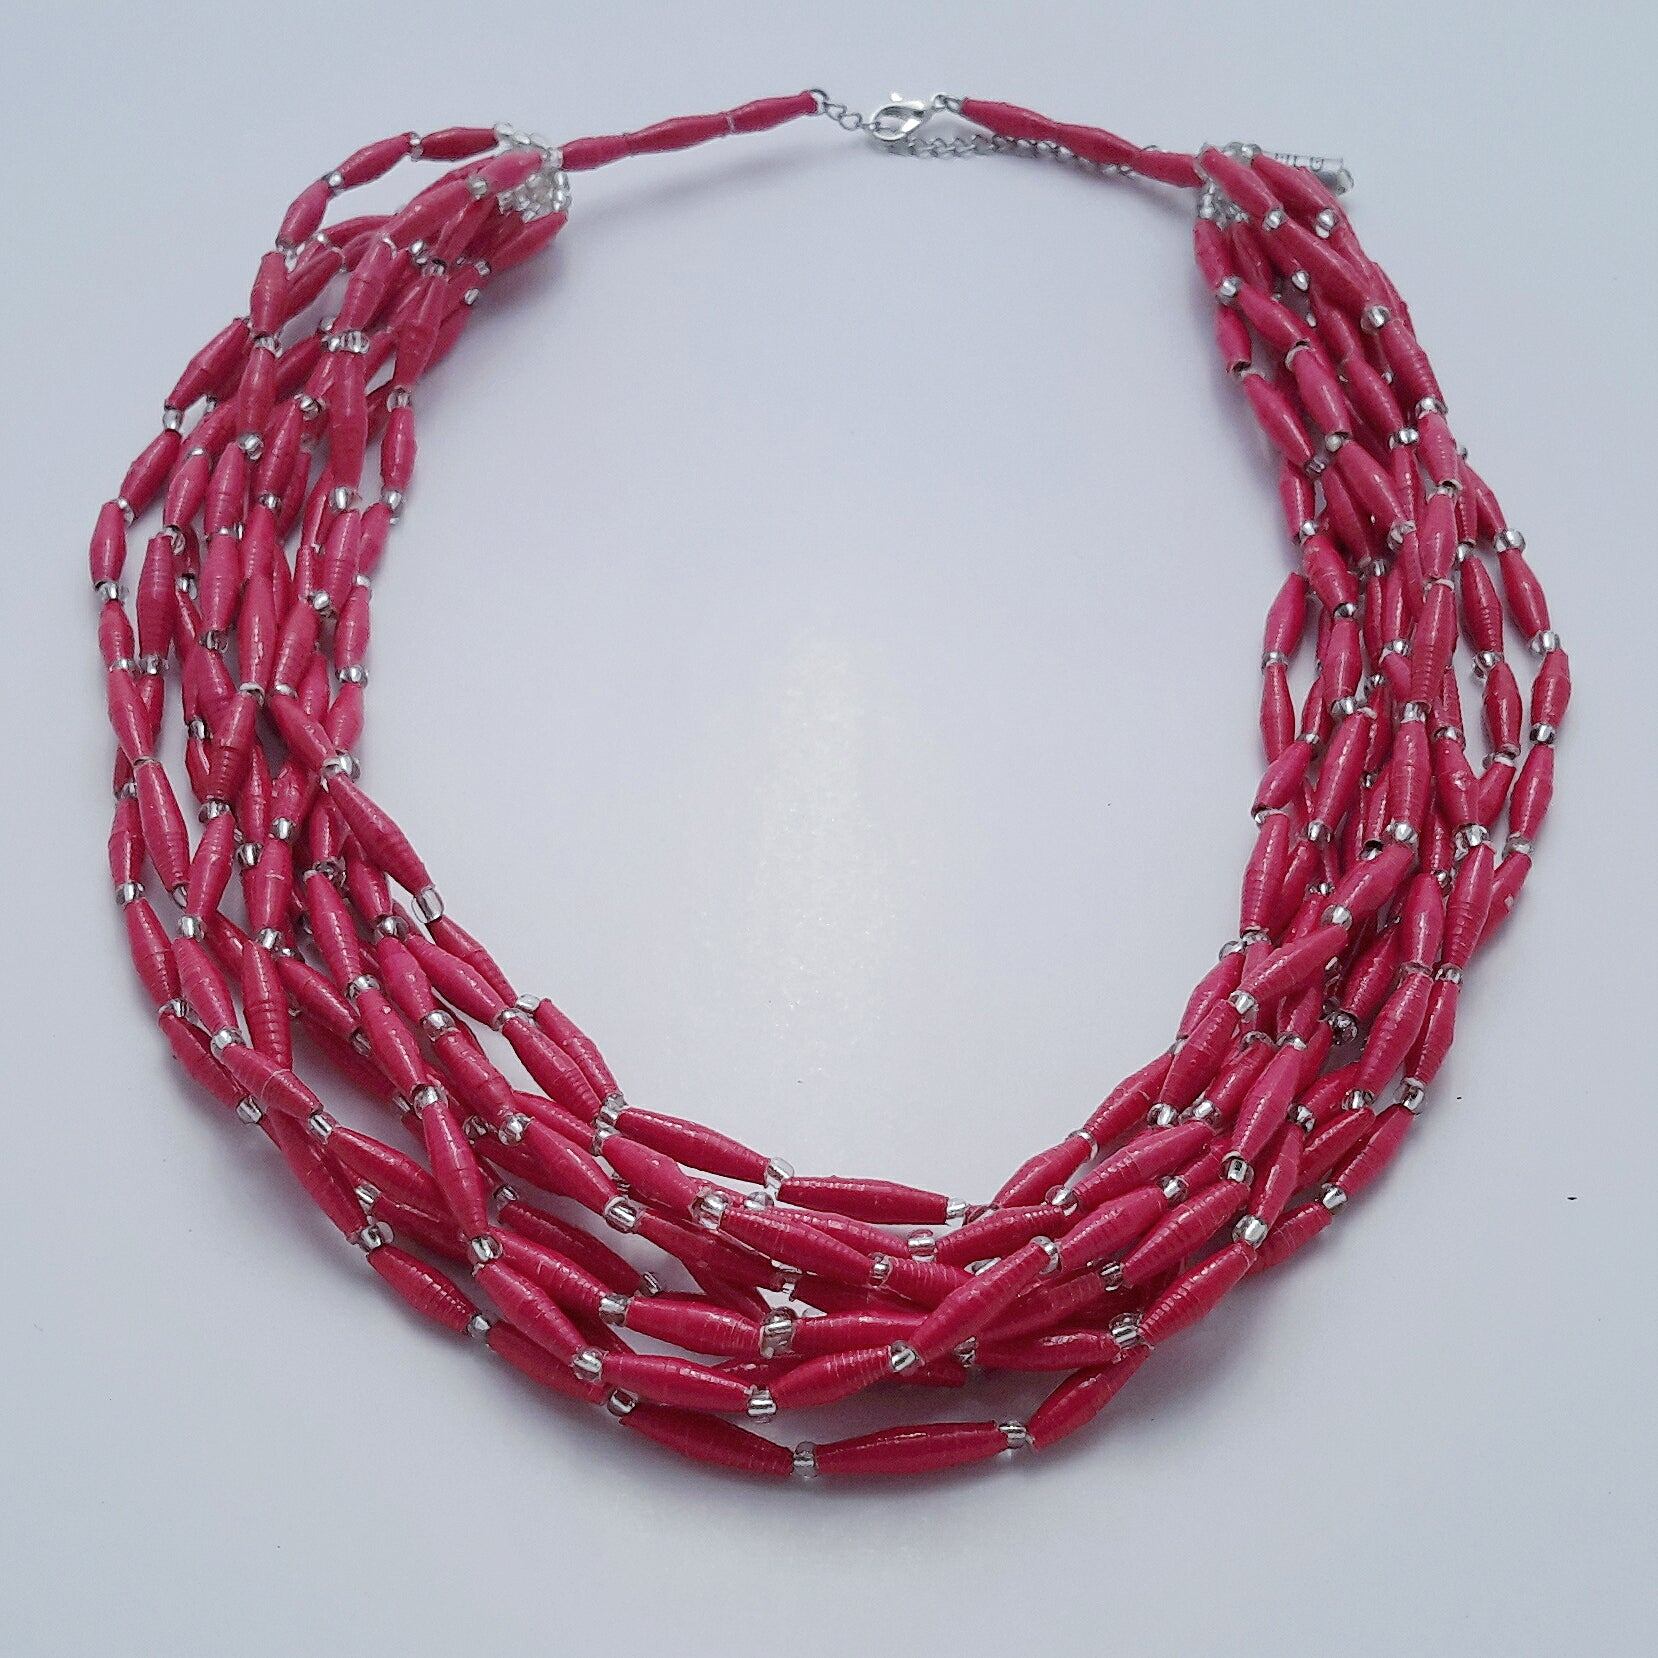 Hand made pink design paper bead necklace made out of recycled paper in Uganda by principles of fair trade, ethical and sustainable fashion, by Finnish brand, Agulu Paper Beads. Eettinen käsintehty pinkki design kaulakoru, joka on tehty kierrätyspaperista reilun kaupan periaattein työllistämällä Ugandalaisia naisia.